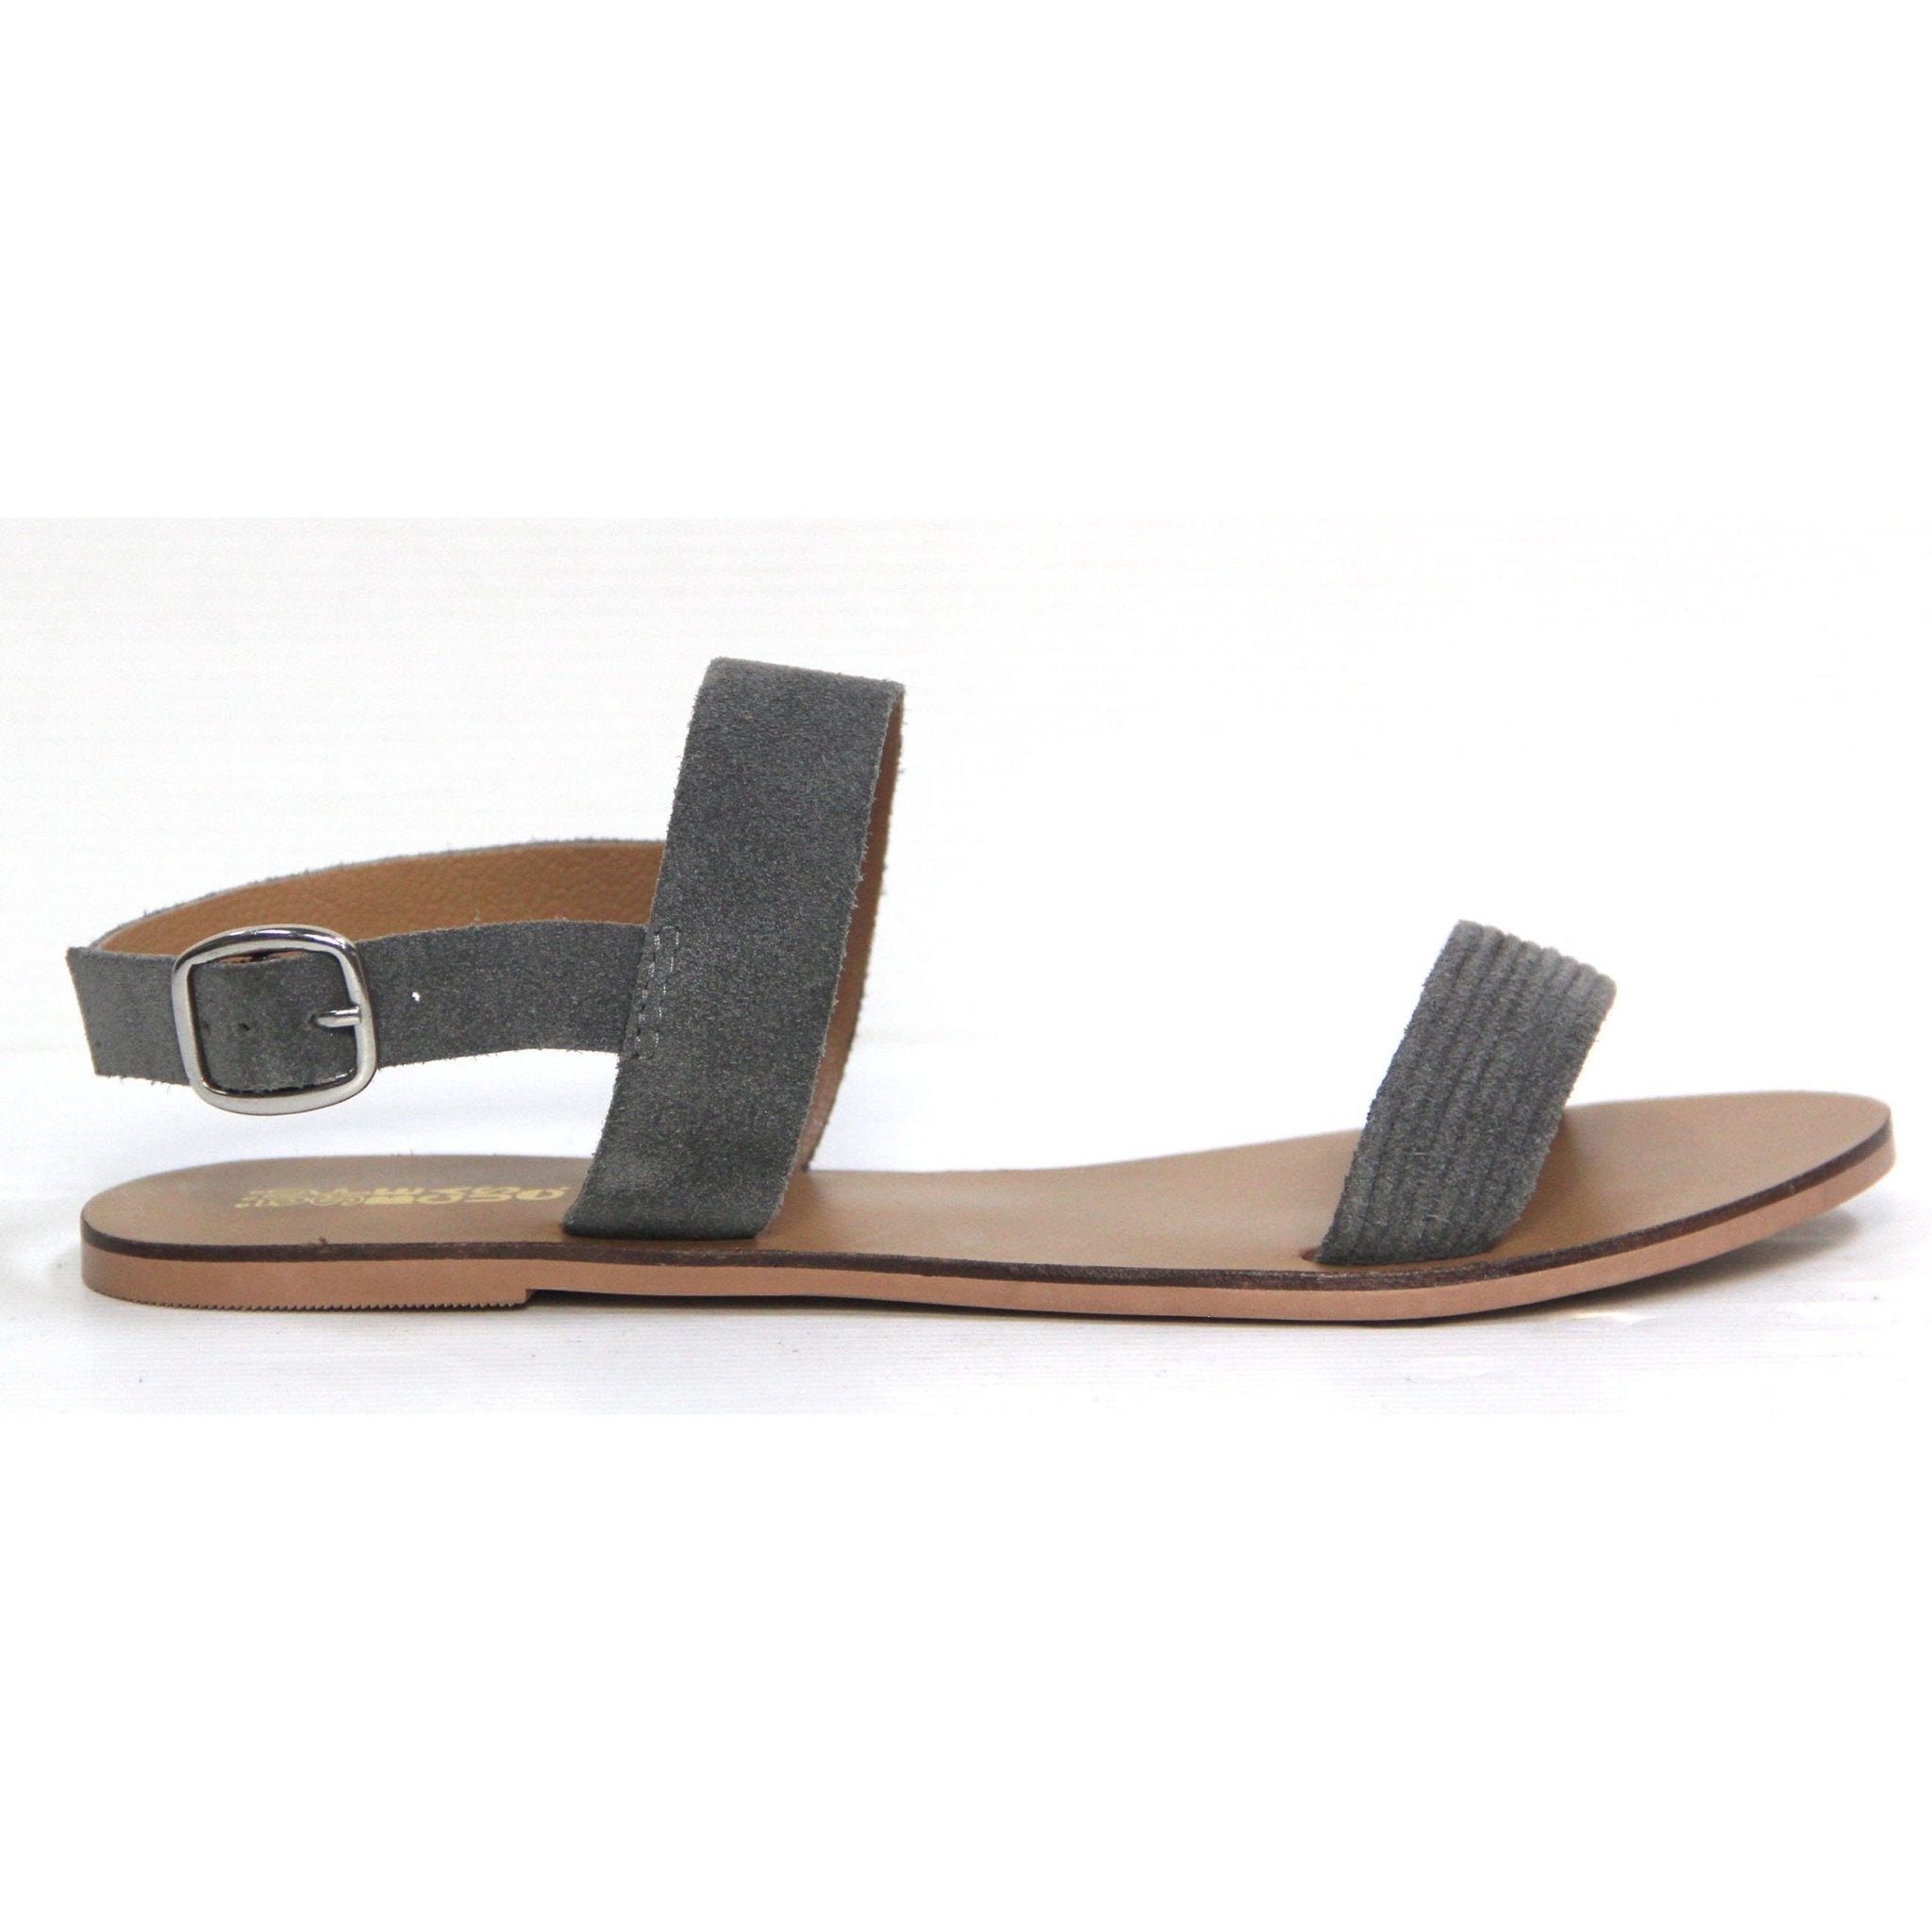 Just Because Bula Sandal in Denim Grey Leather - Hey Sara